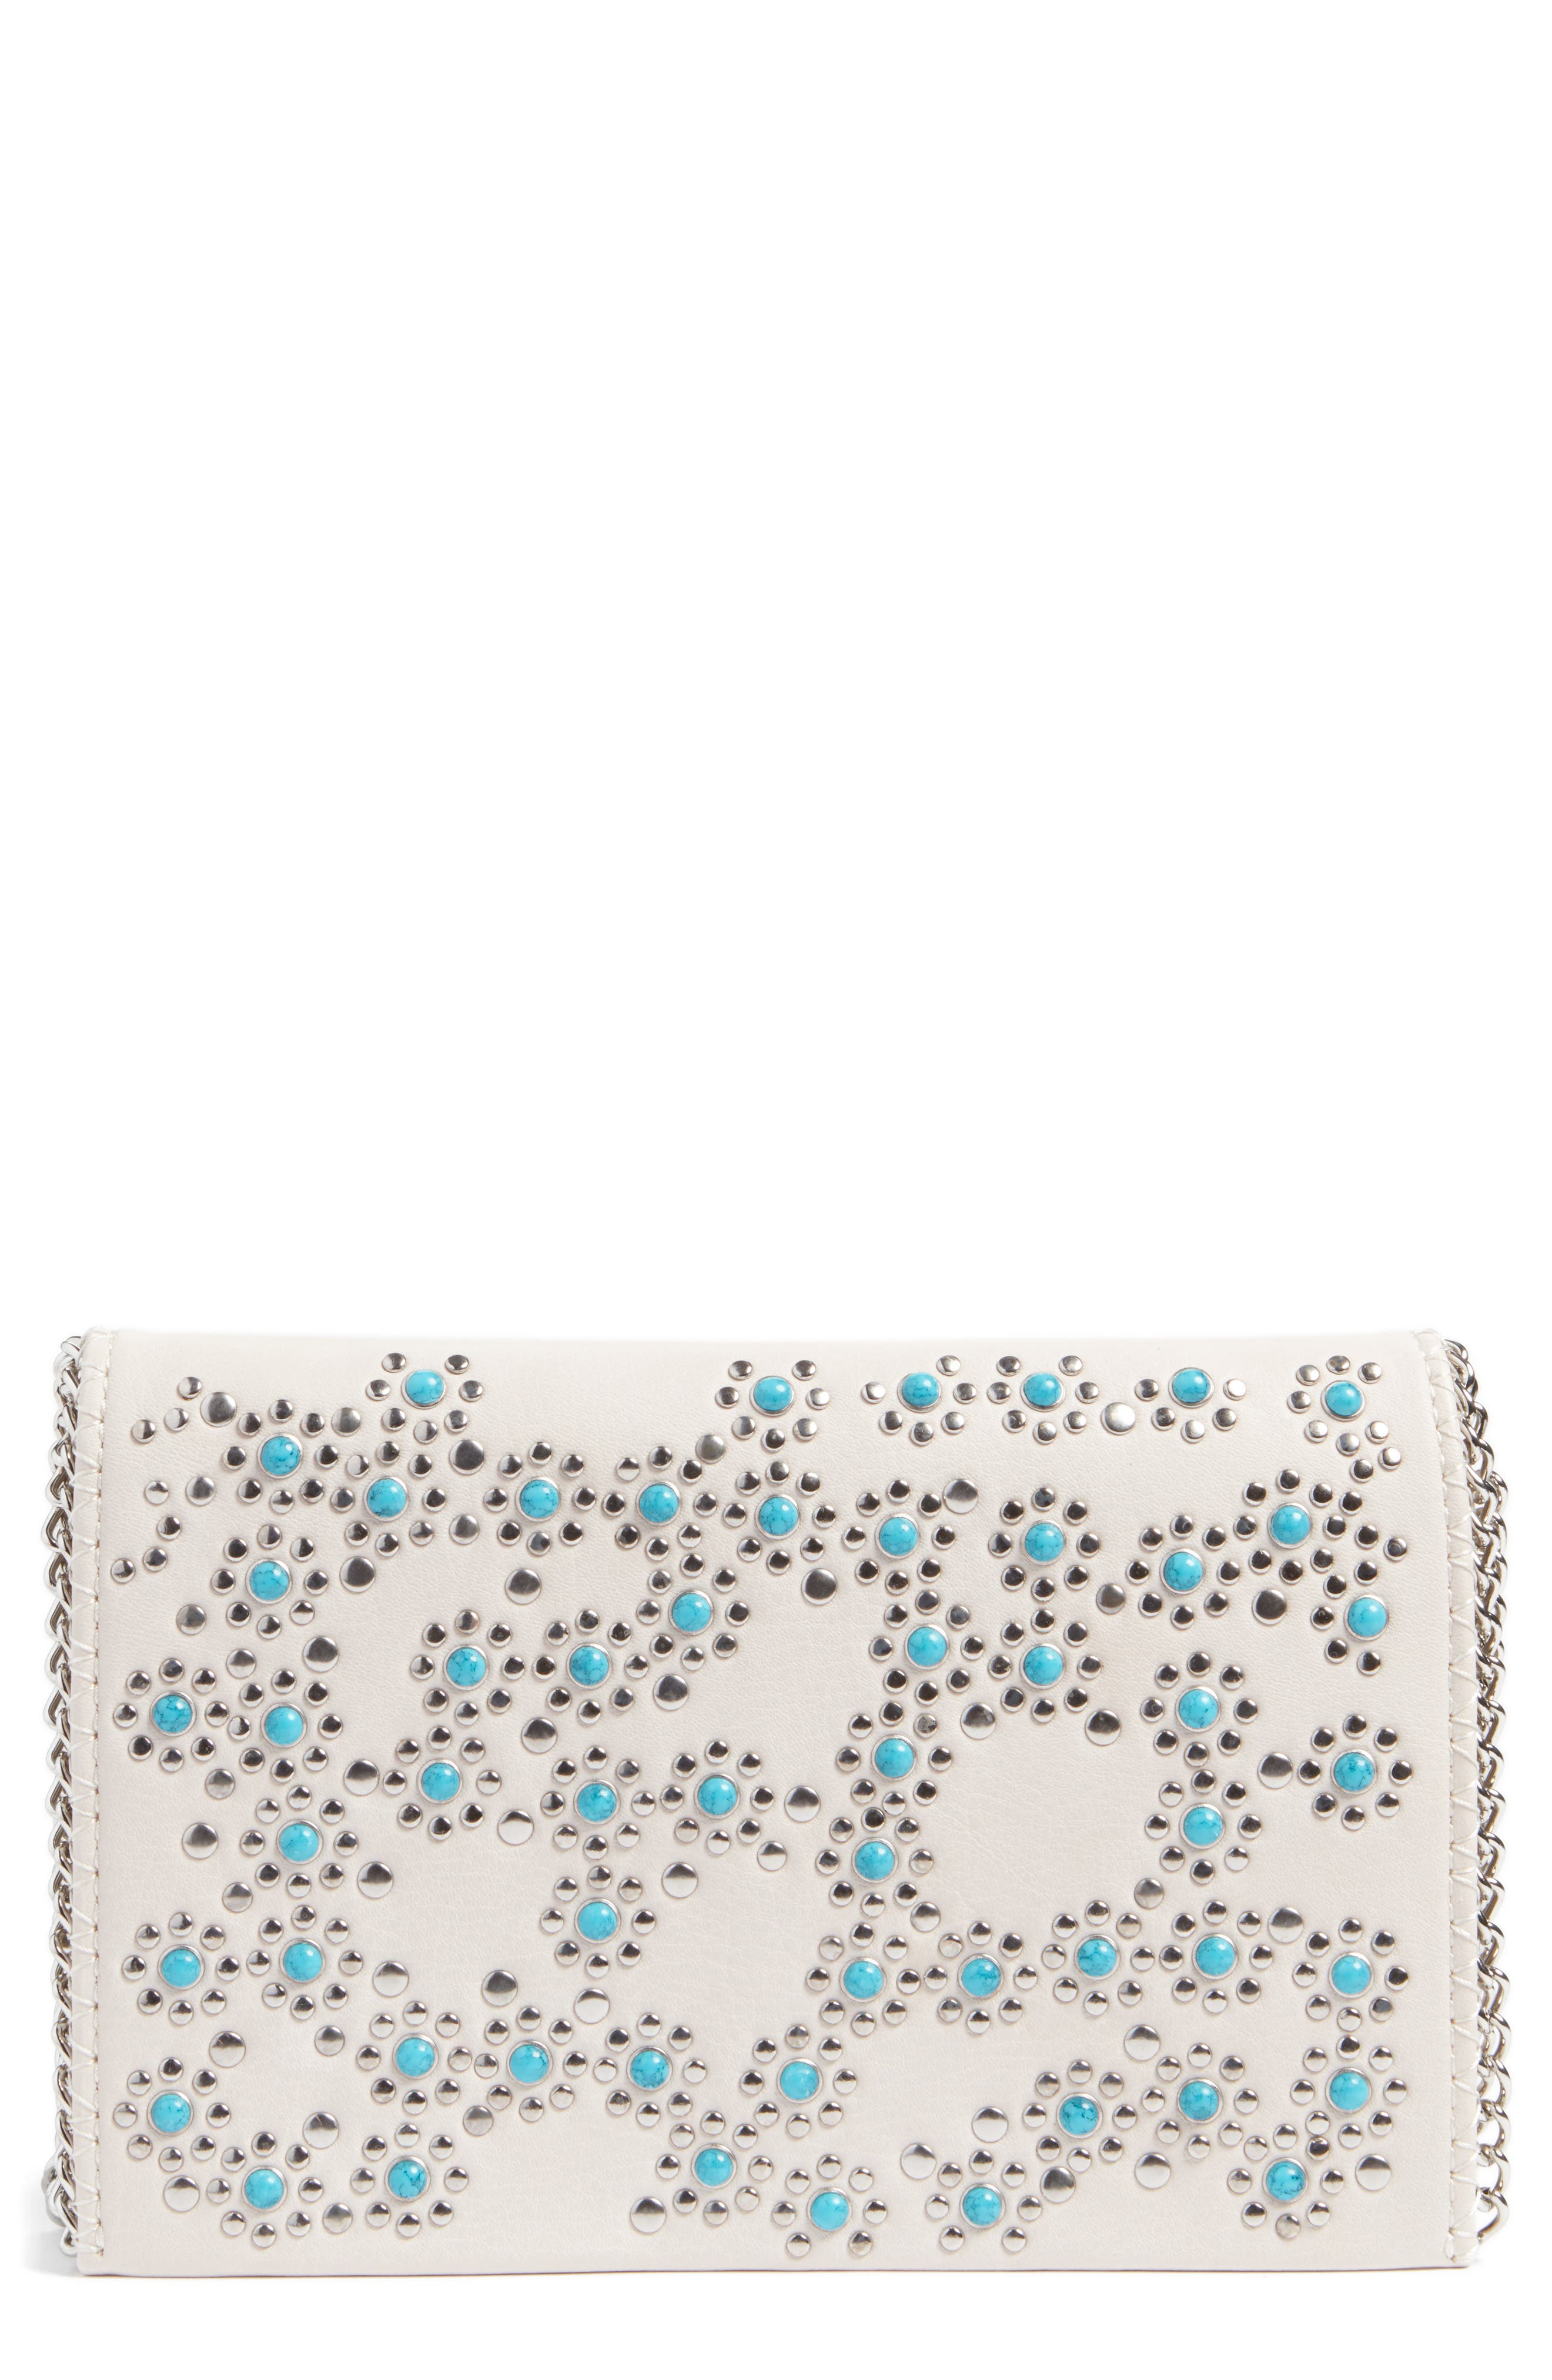 Main Image - Chelsea28 Embellished Faux Leather Convertible Clutch